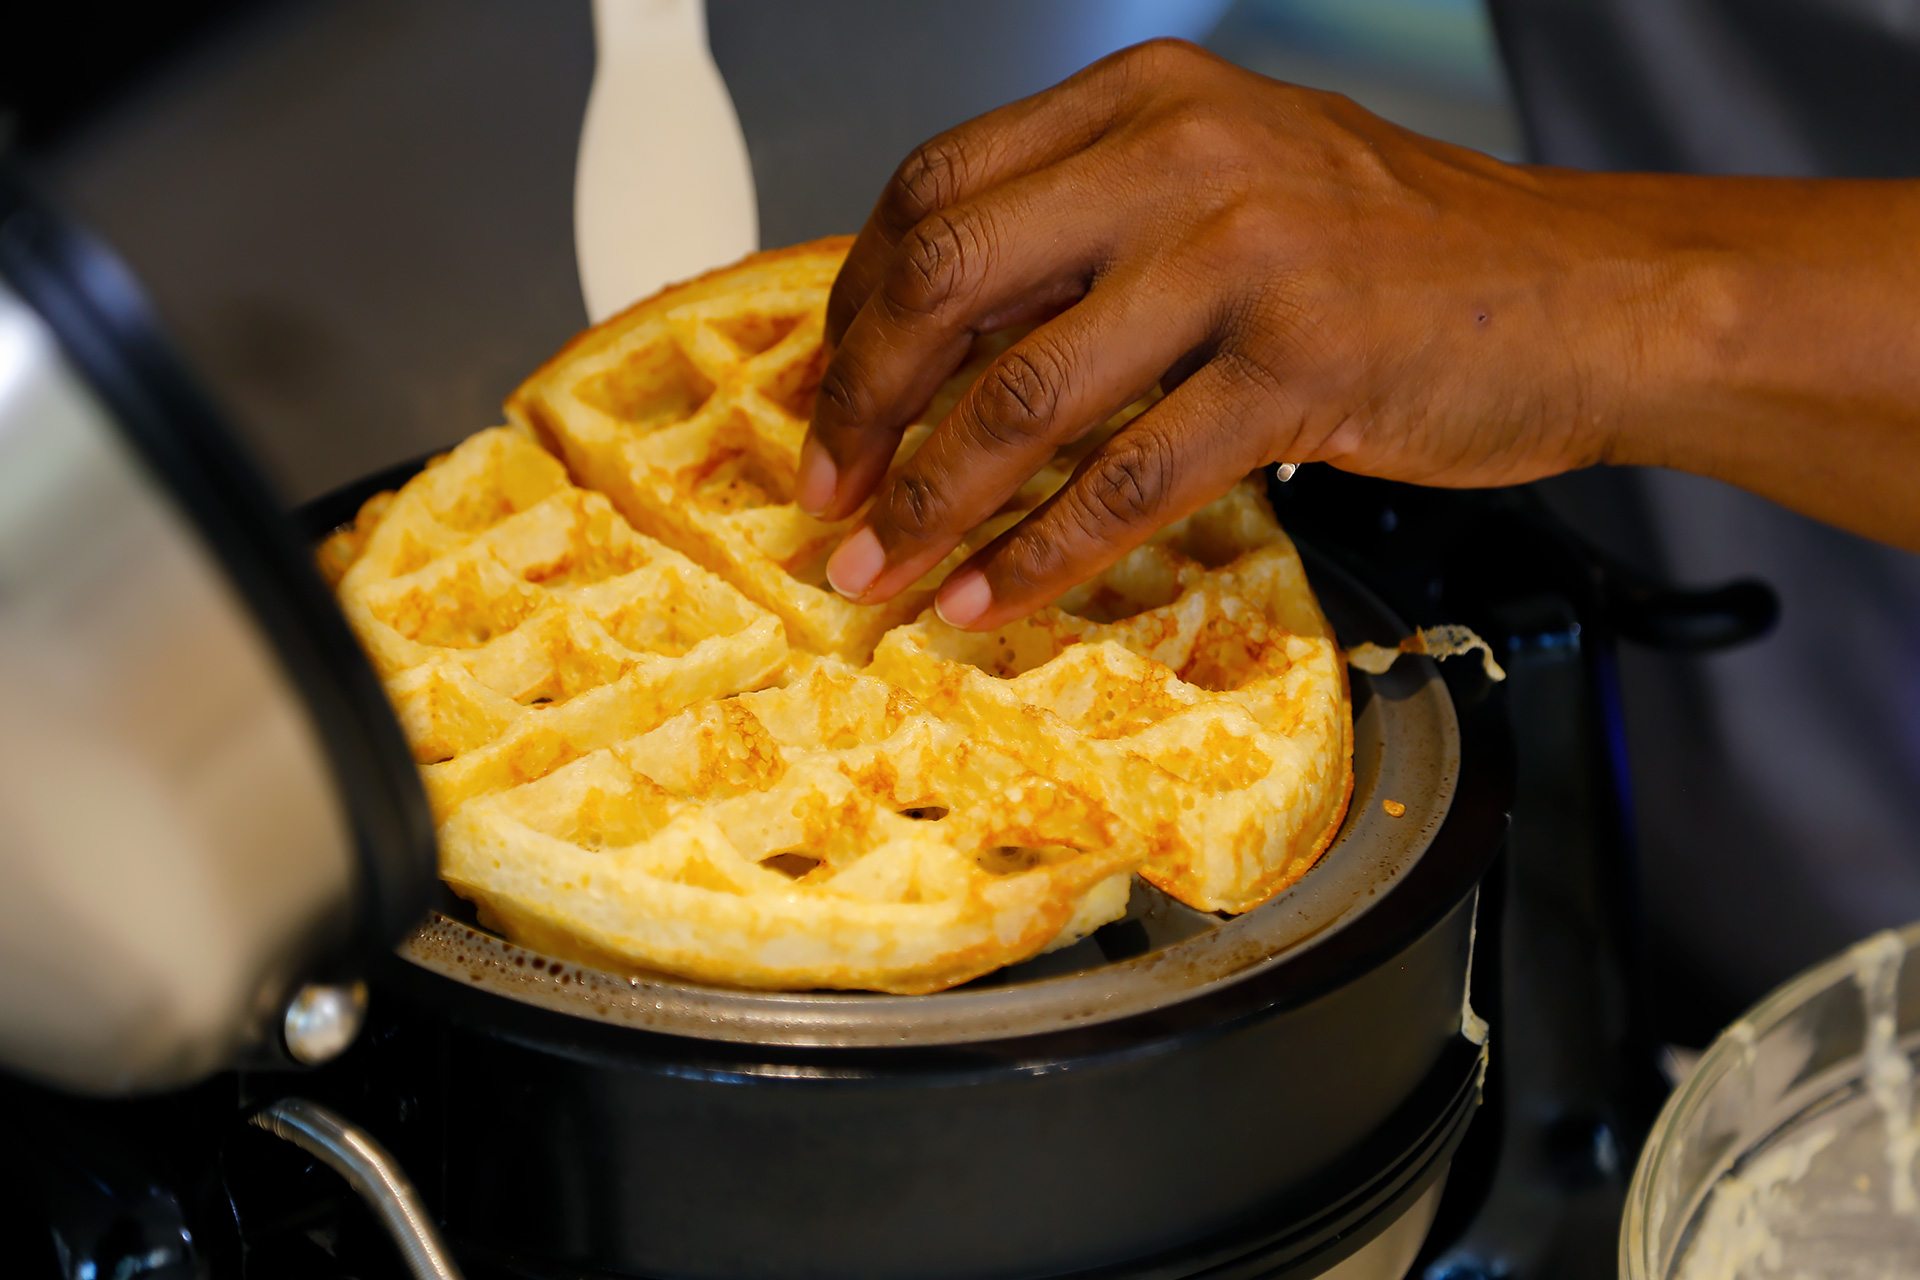 Cook waffles, following manufacturer's instructions, until golden and cooked through, about 3 minutes.